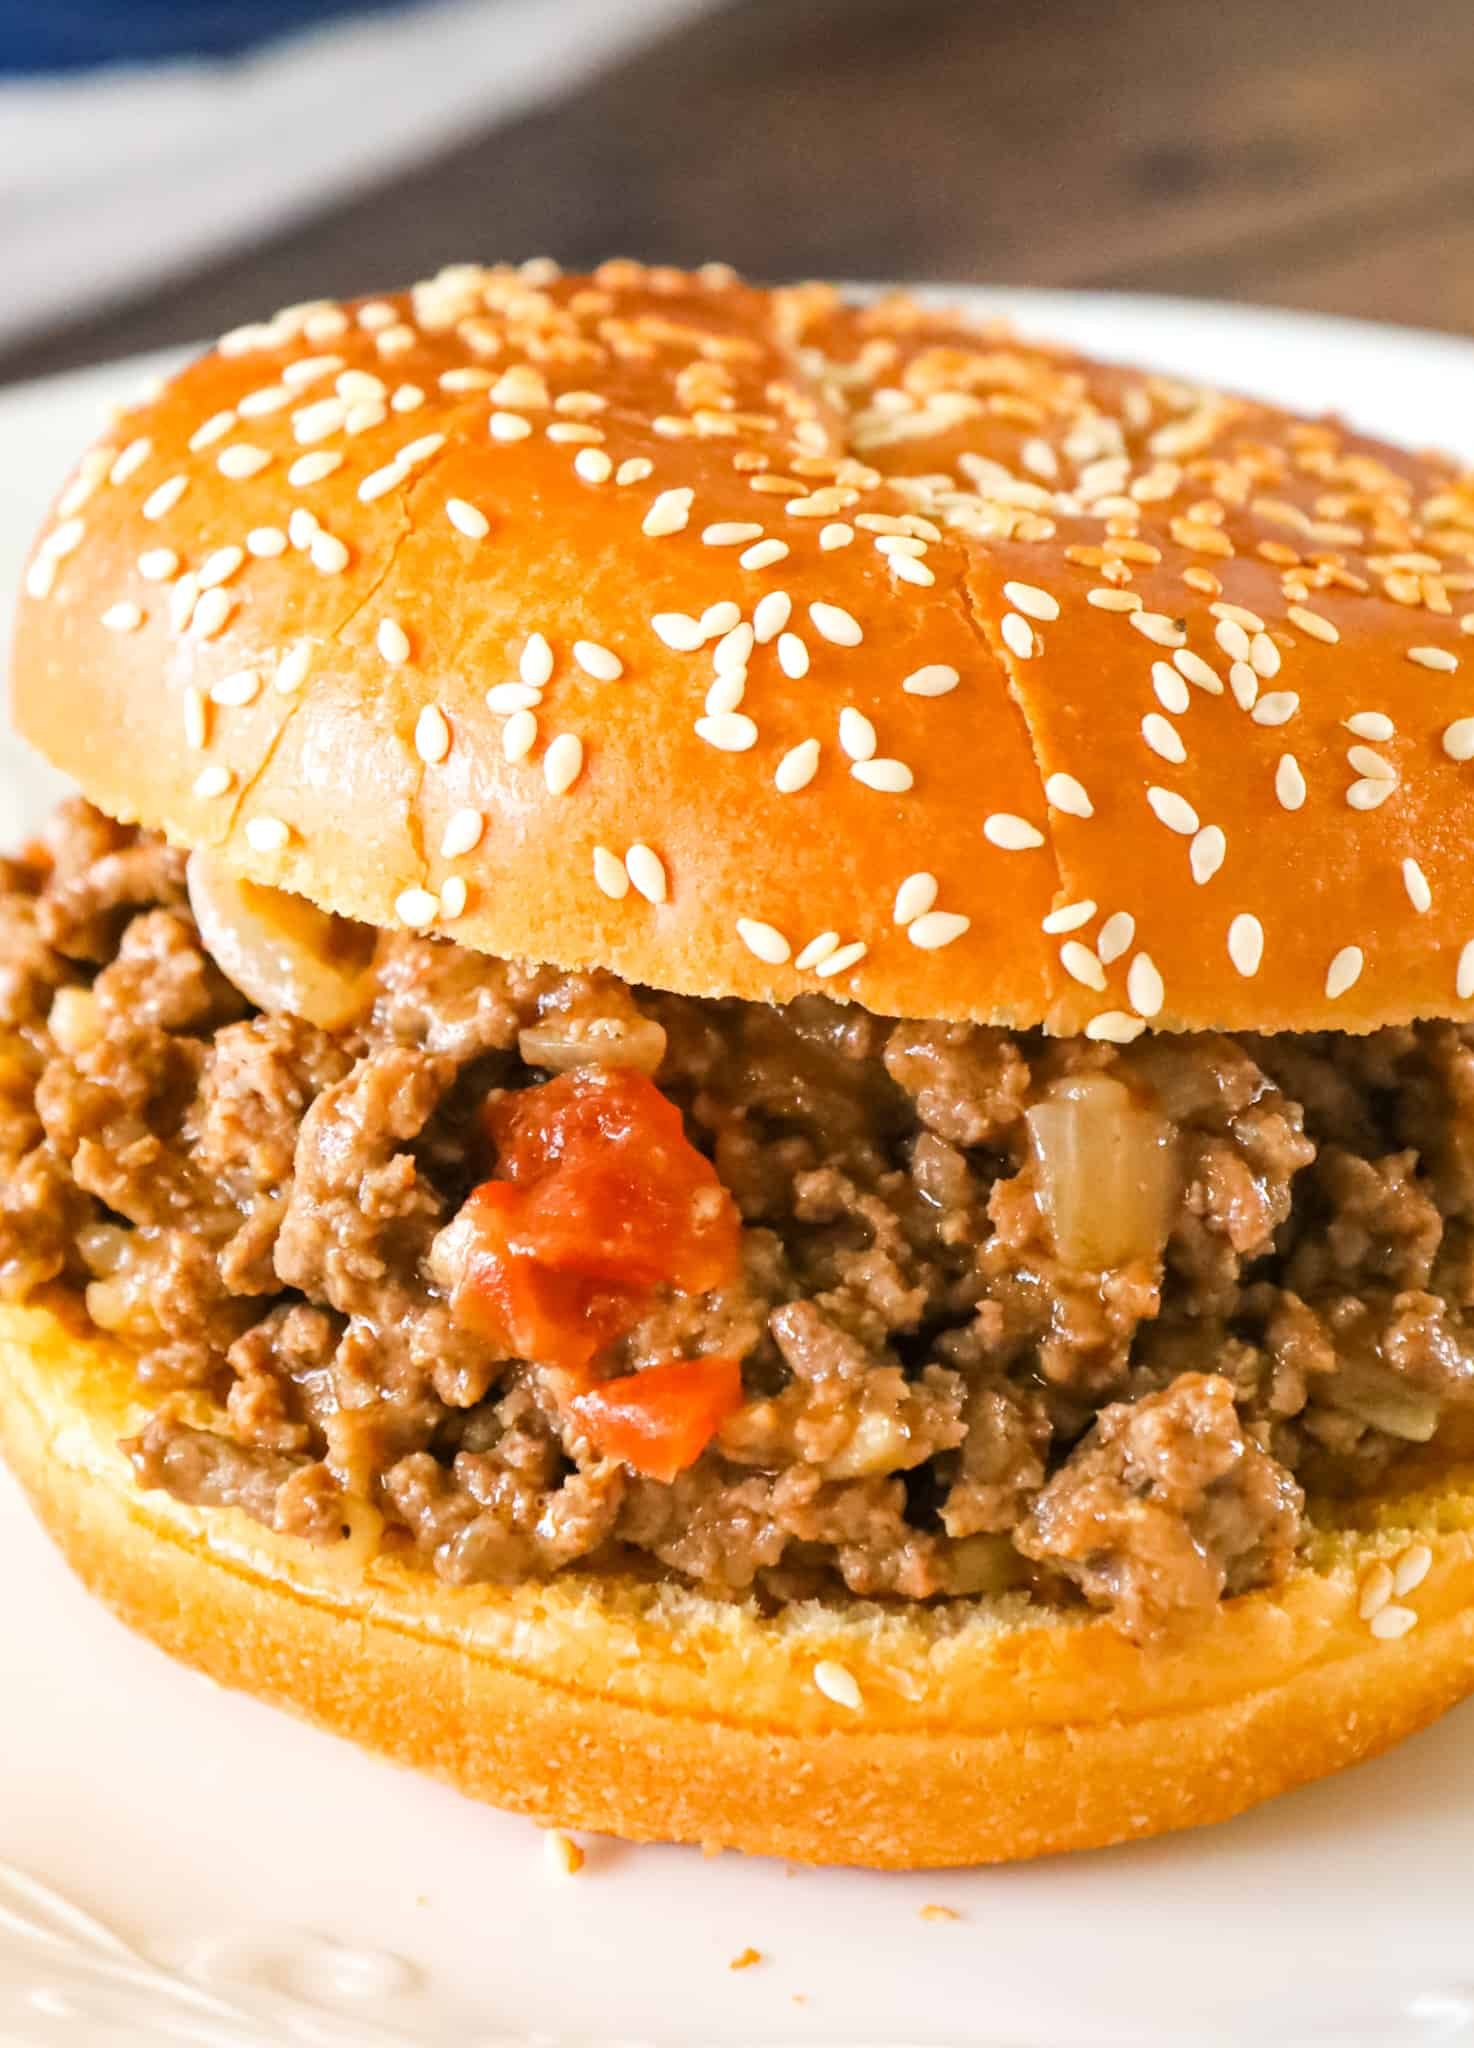 Chicken Gumbo Sloppy Joes are an easy weeknight dinner recipe using lean ground beef and Campbell's chicken gumbo soup.